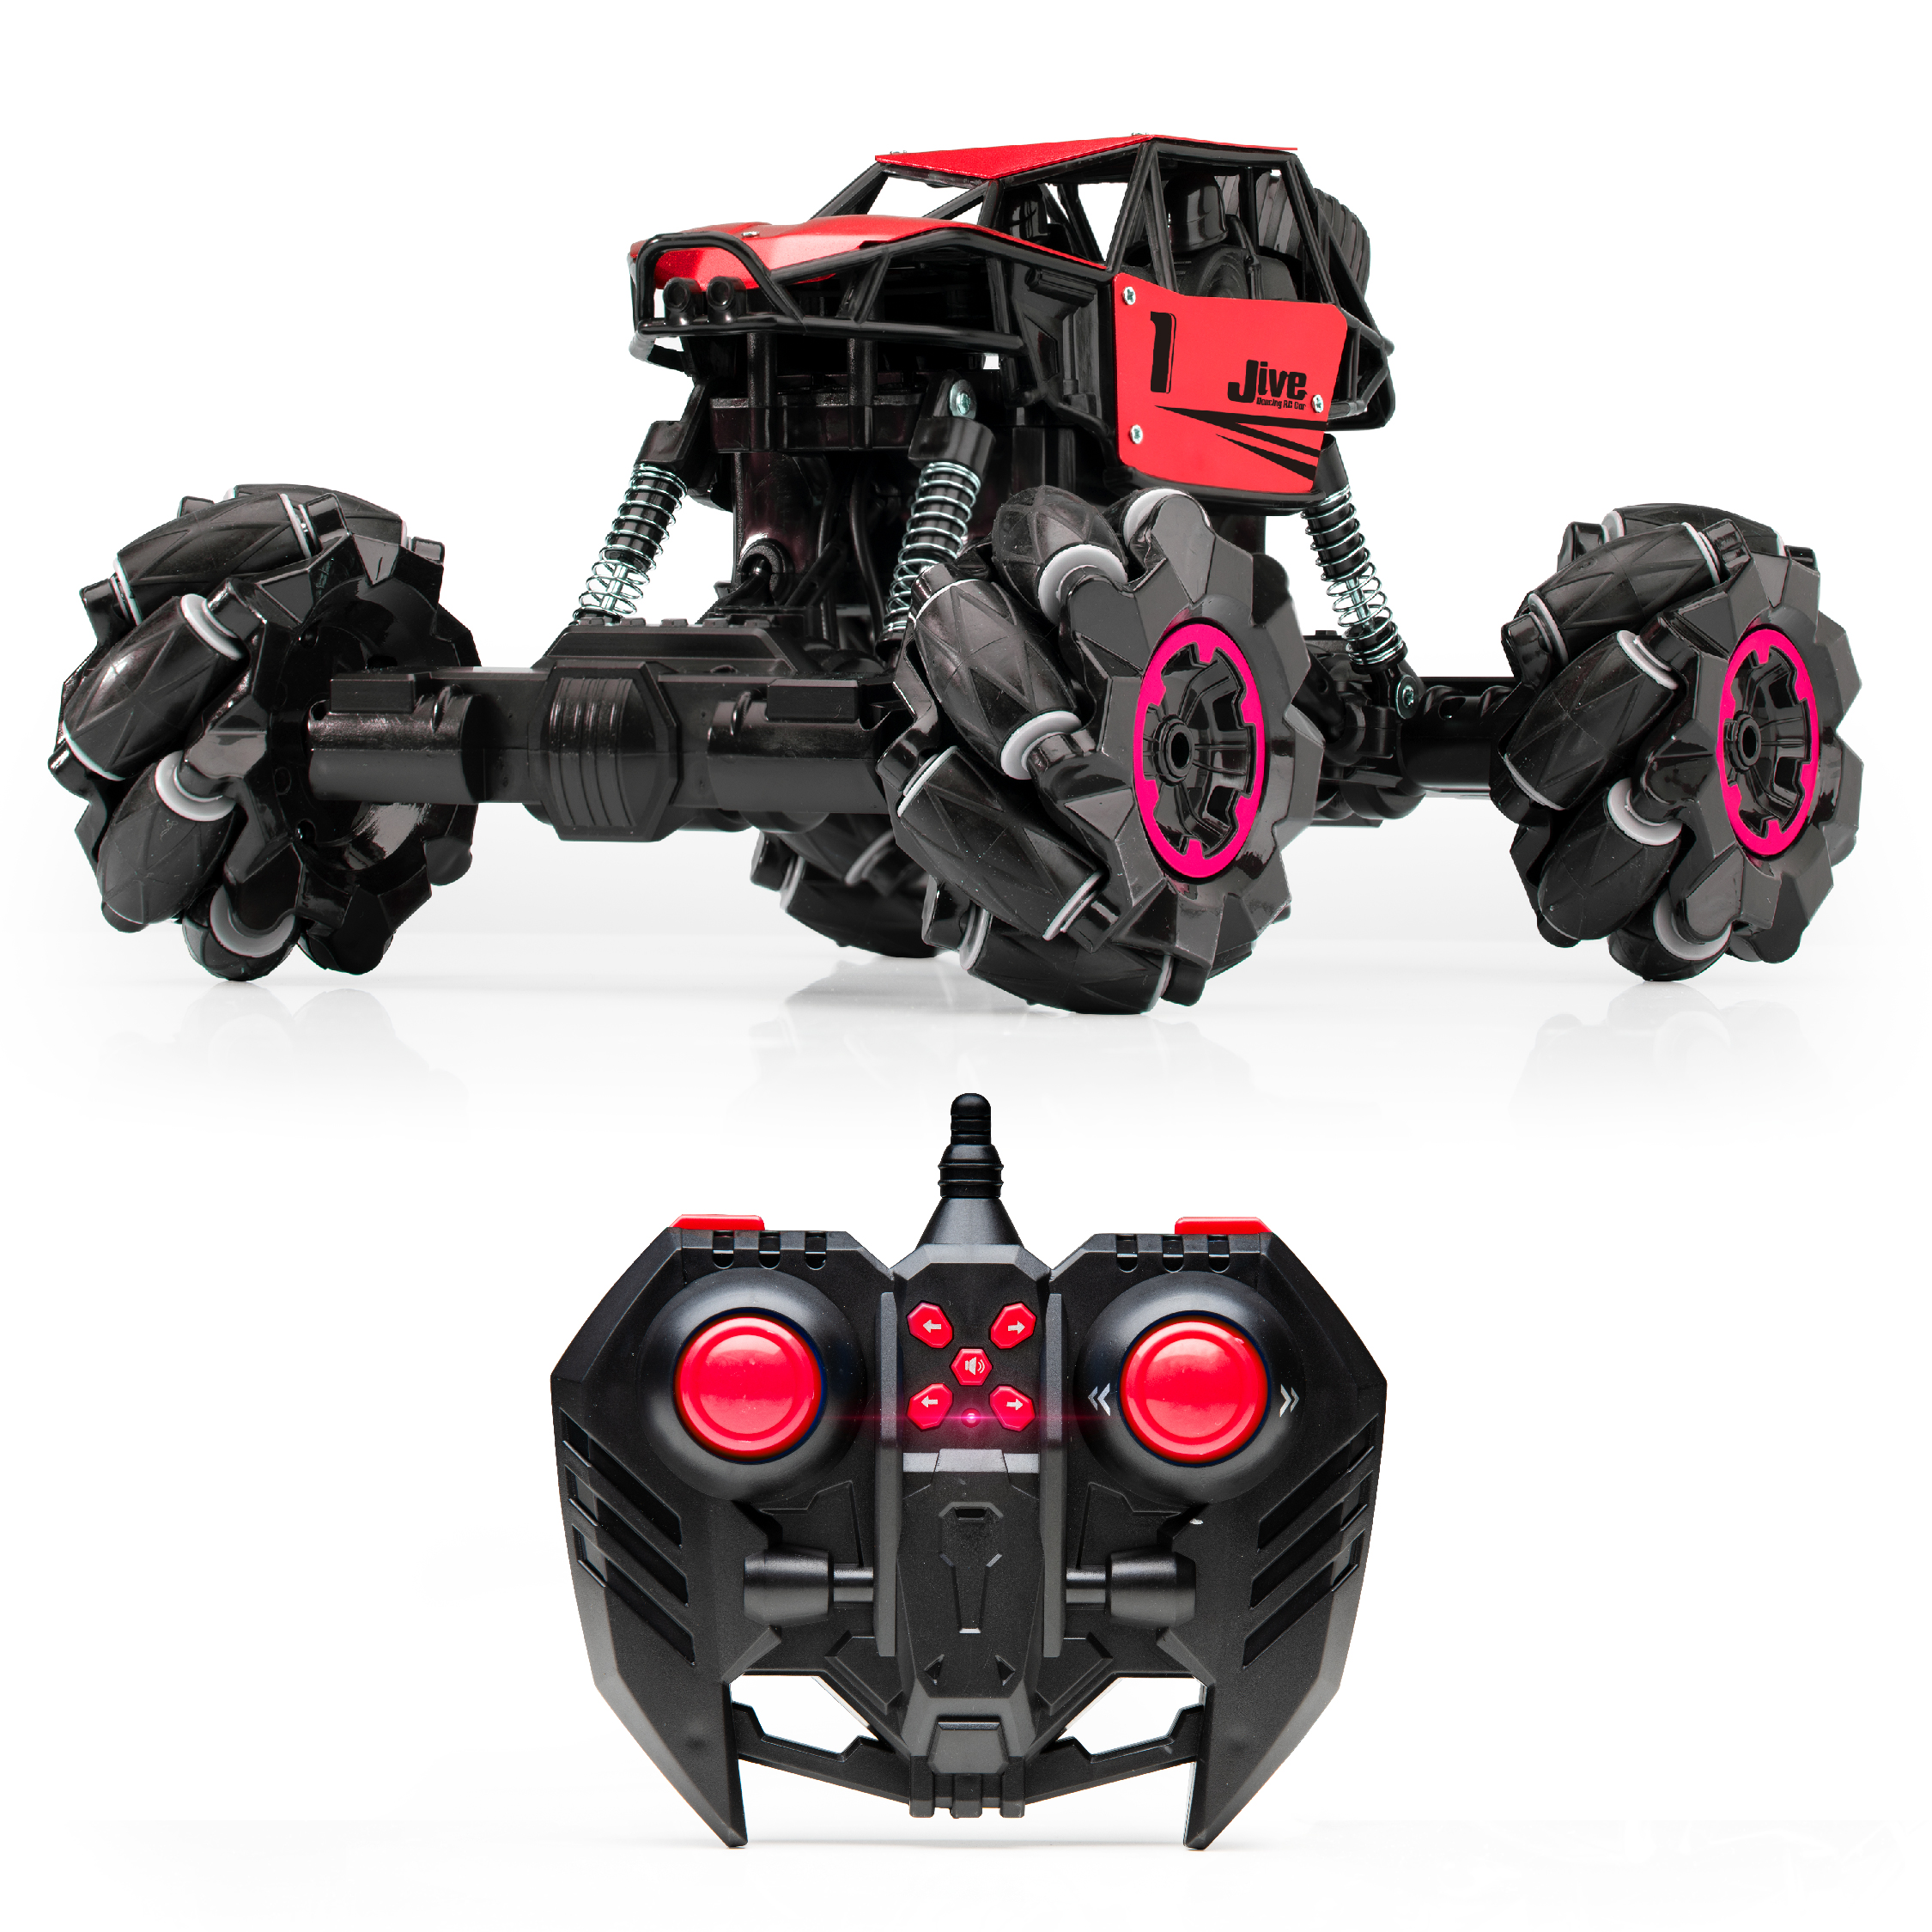 Jive Dancing Remote Control Car With Music And Led Lights Family Choice Awards